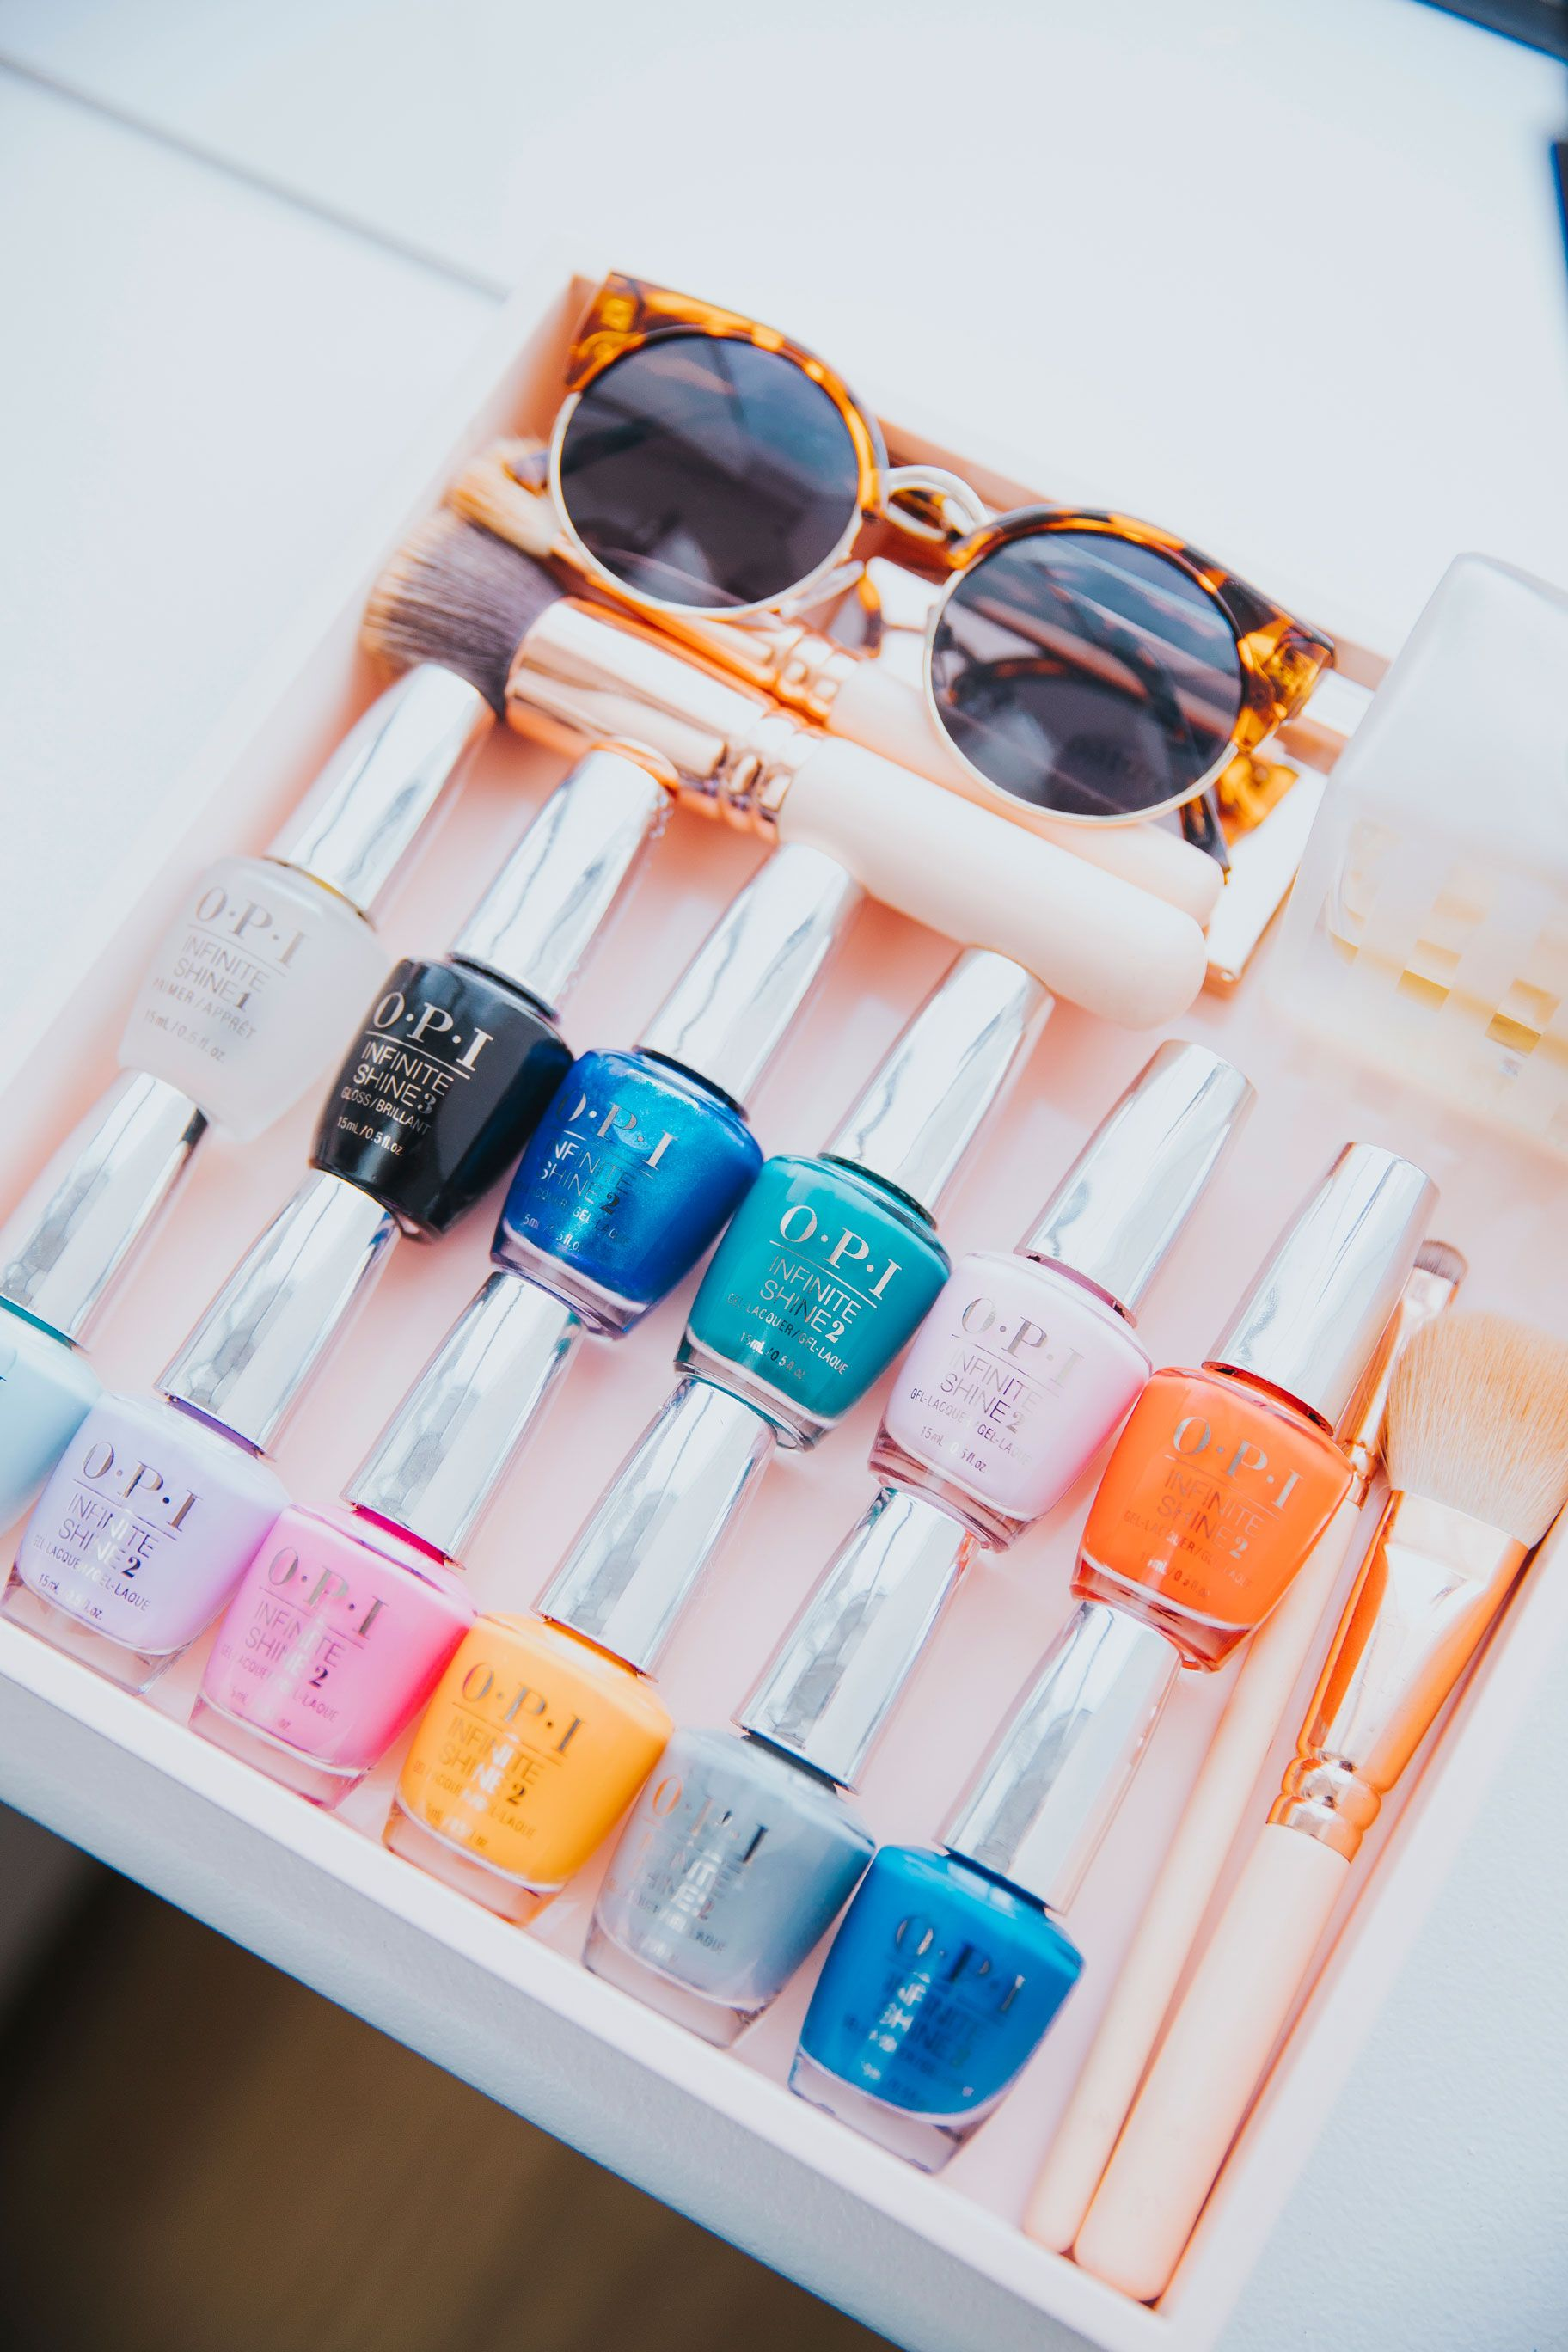 """<p>""""Spring is all about a color refresh. These bright colors by OPI are the way to go.""""</p><p><em data-redactor-tag=""""em"""" data-verified=""""redactor"""">OPI Fiji Collection, </em><a href=""""https://www.opi.com/#R62Tgfil6Zro2as3.97"""" target=""""_blank"""" data-tracking-id=""""recirc-text-link""""><em data-redactor-tag=""""em"""" data-verified=""""redactor"""">OPI.com</em></a></p>"""